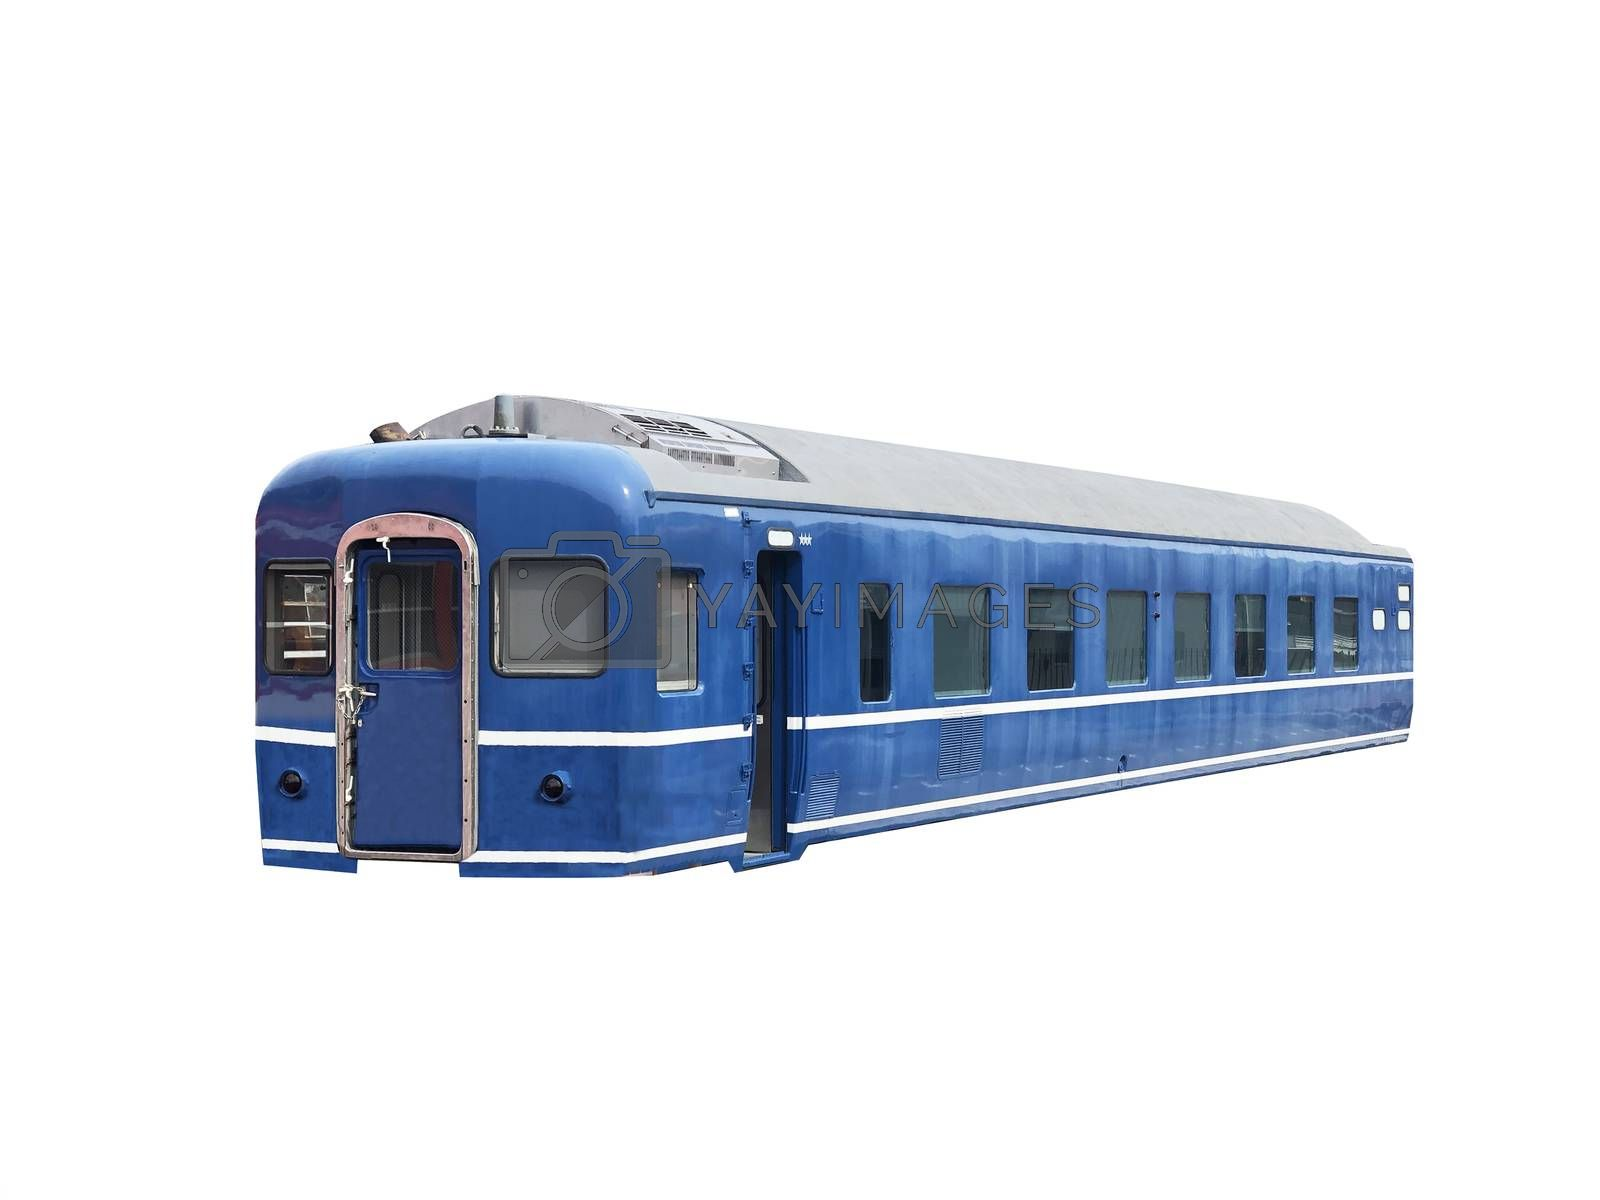 Vintage blue train on white background.